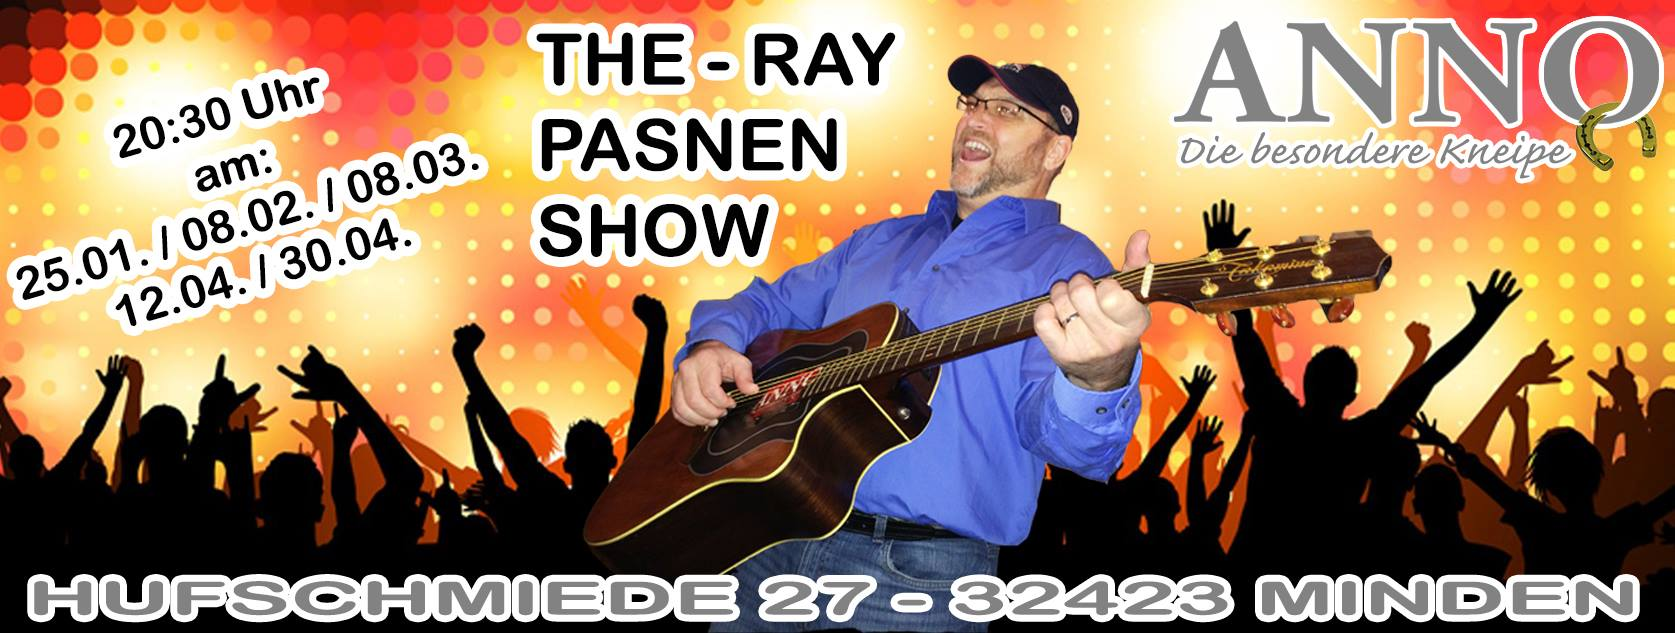 Ray Pasnen live at Anno Jan 25 - Feb 08 - Mar 08 - Apr 12 - Apr 30 - 2014